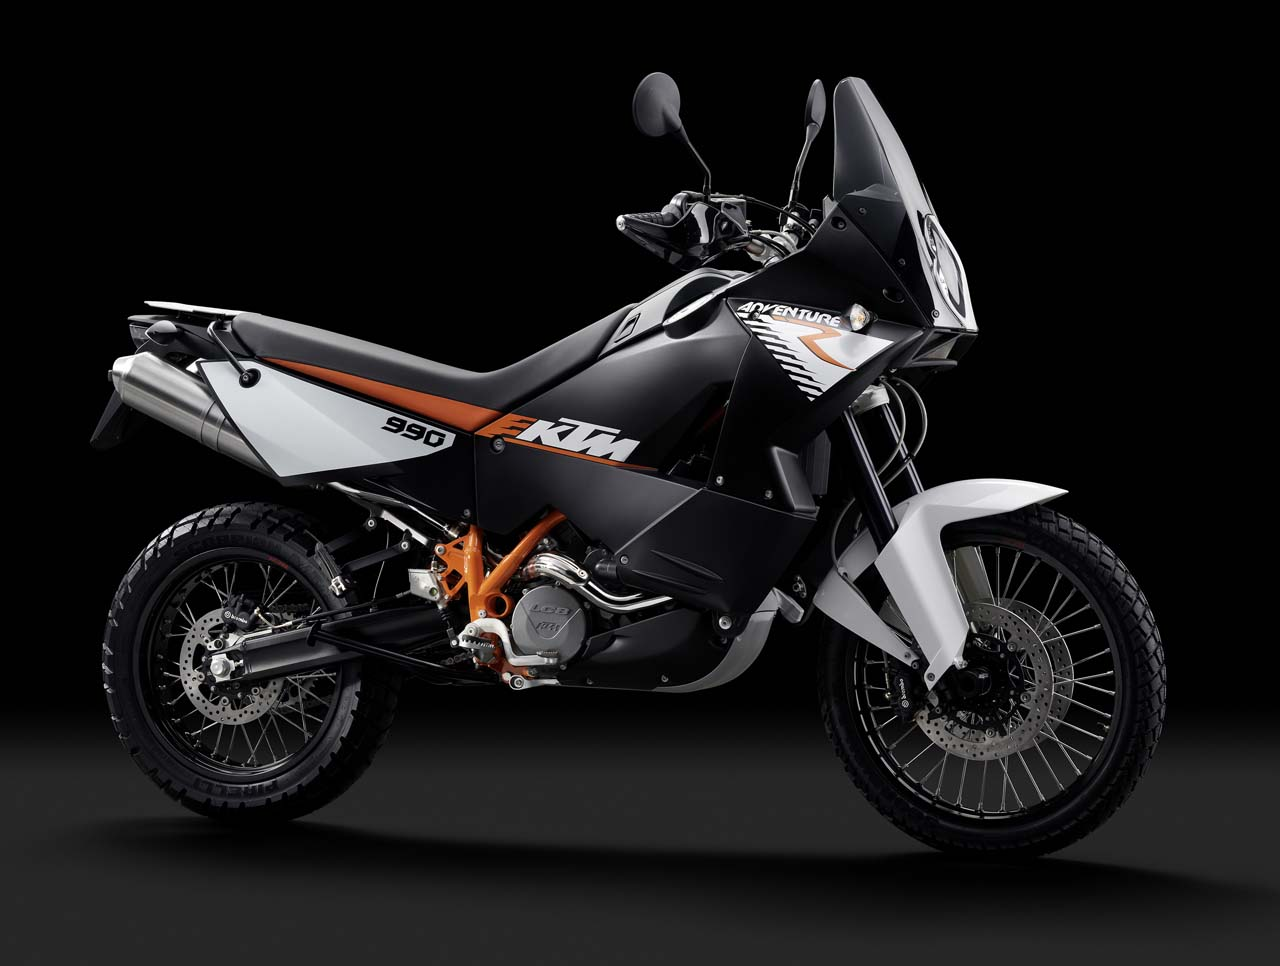 2012 ktm 990 adventure r dakar edition motorboxer. Black Bedroom Furniture Sets. Home Design Ideas